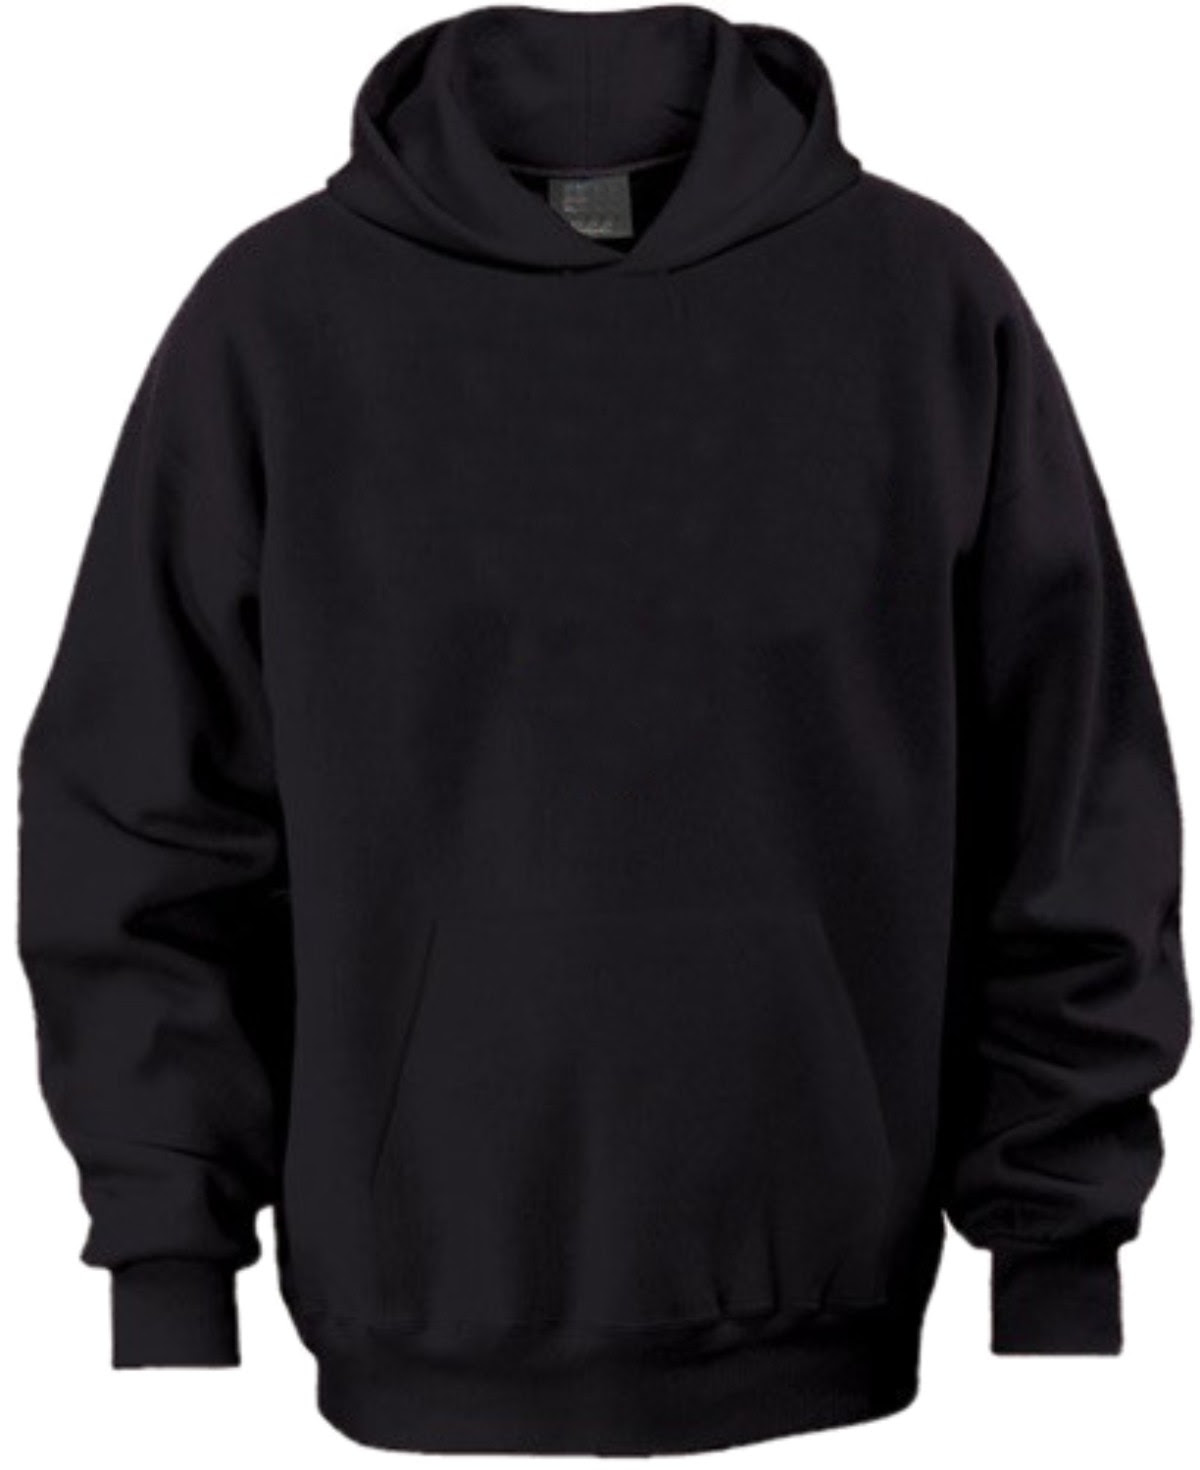 The Cheap Wholesale Mens Blank Black Jersey Hoodies Manufacturer ...